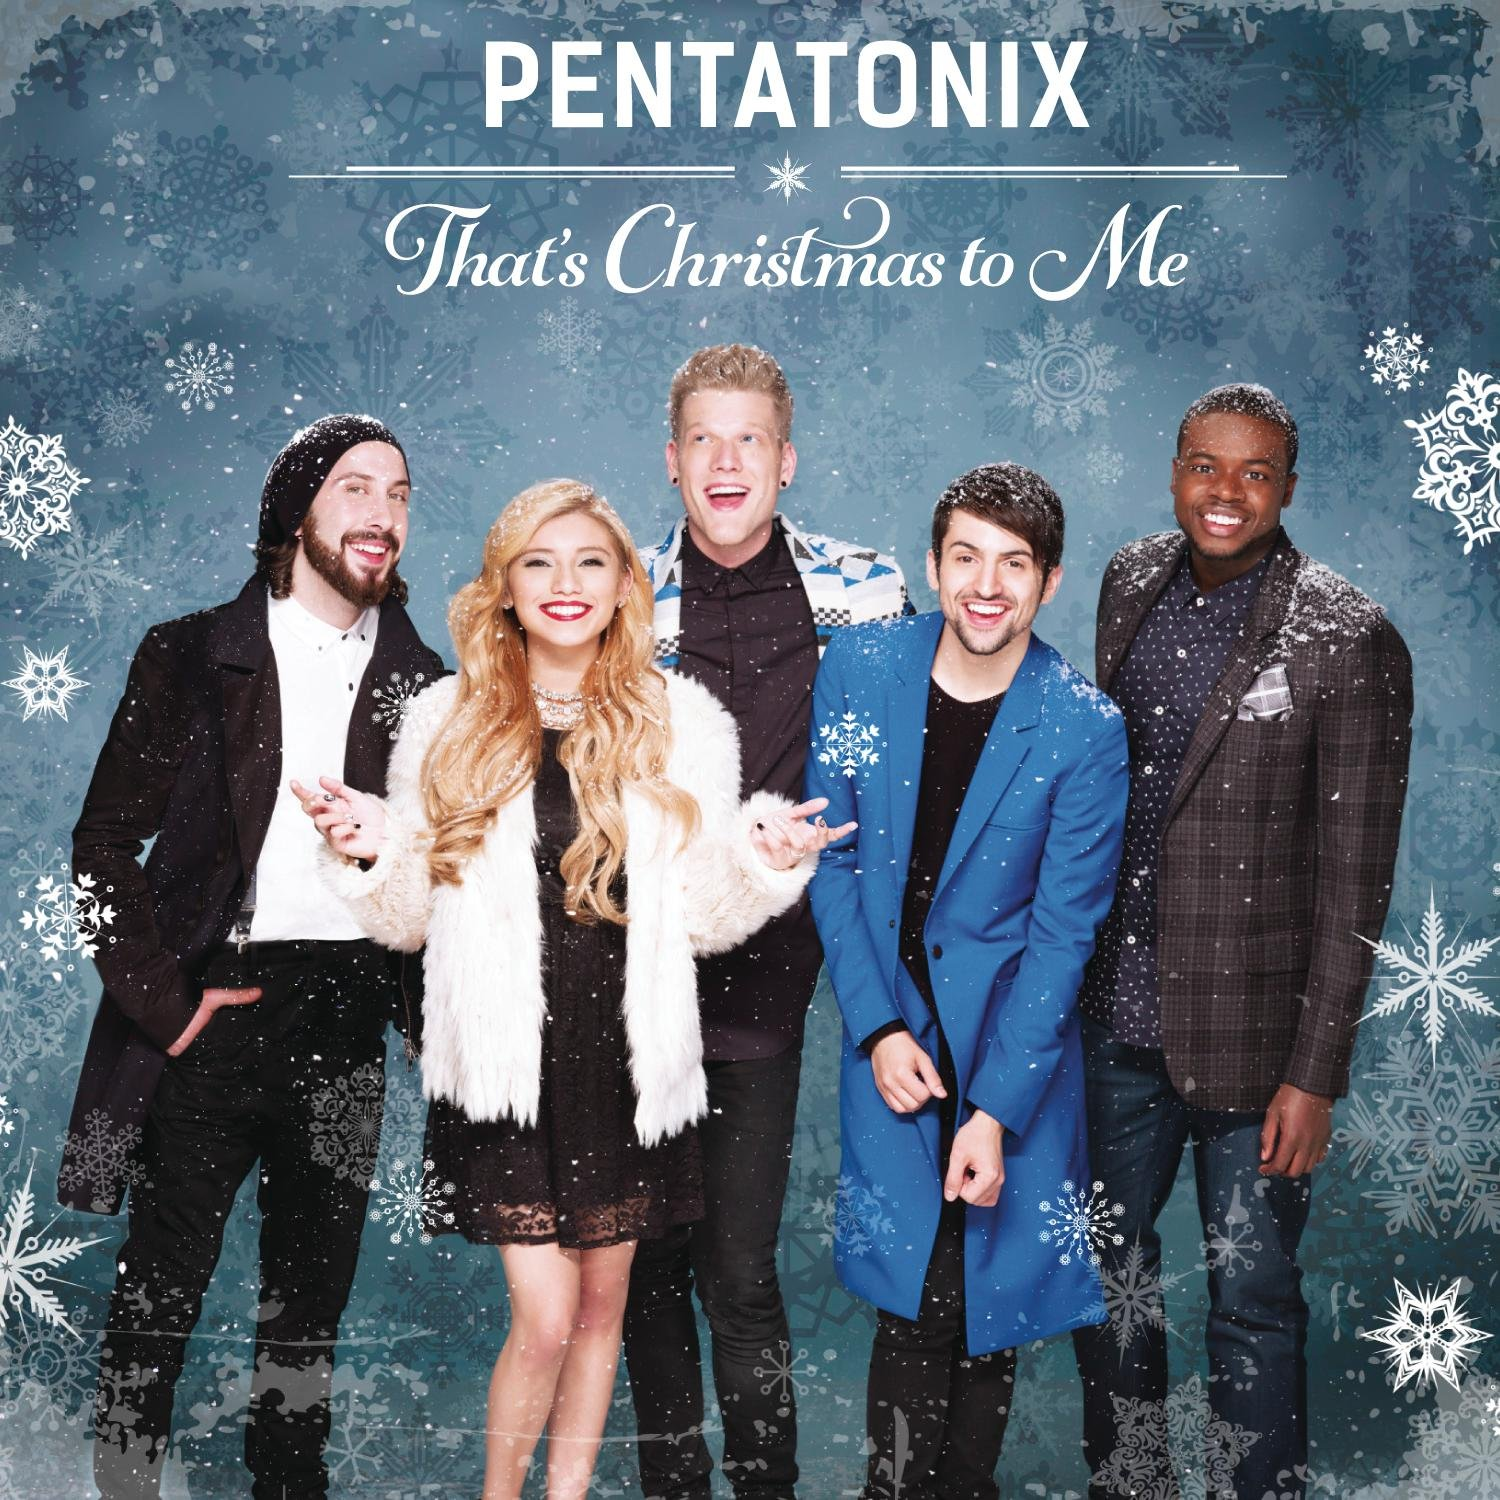 Pentatonix Christmas CD